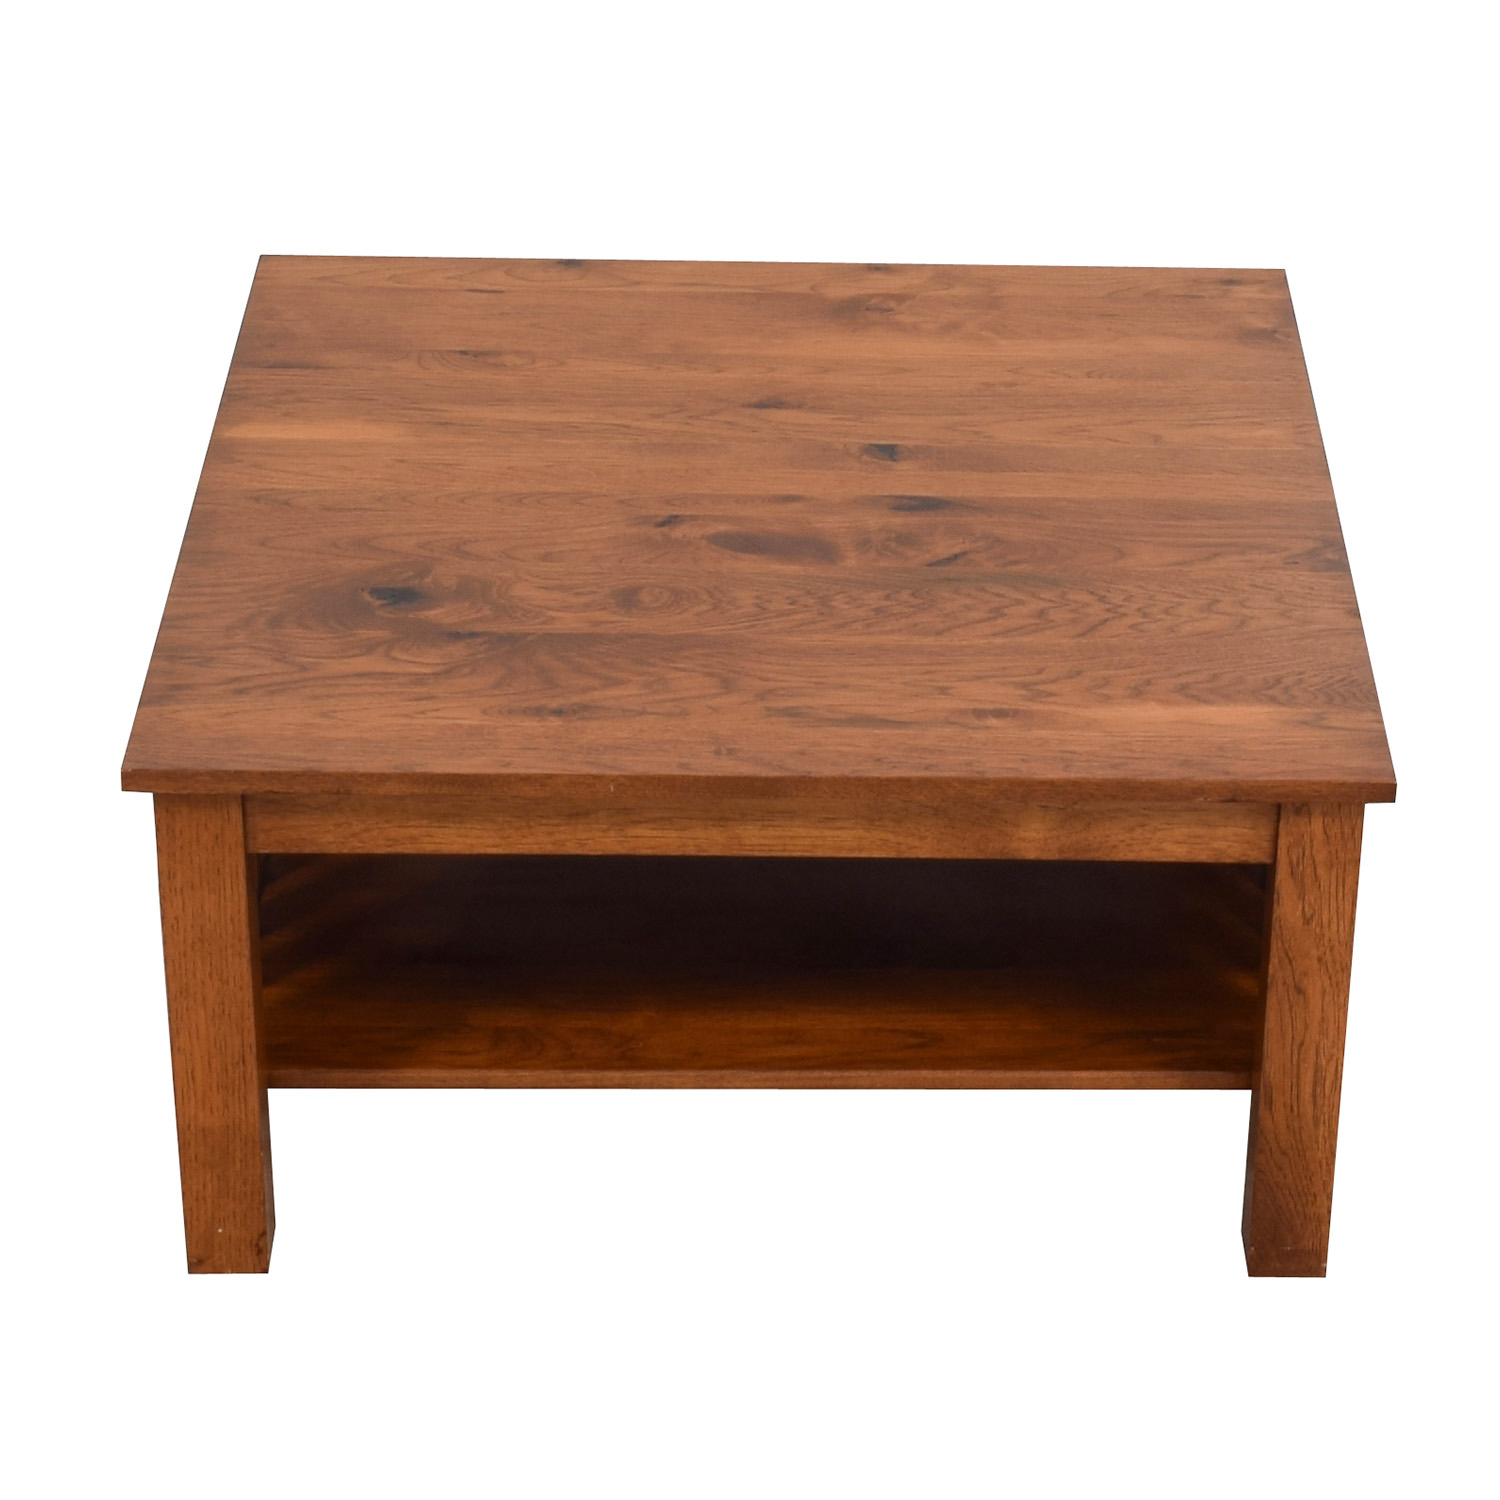 shop DutchCrafters Square Coffee Table DutchCrafters